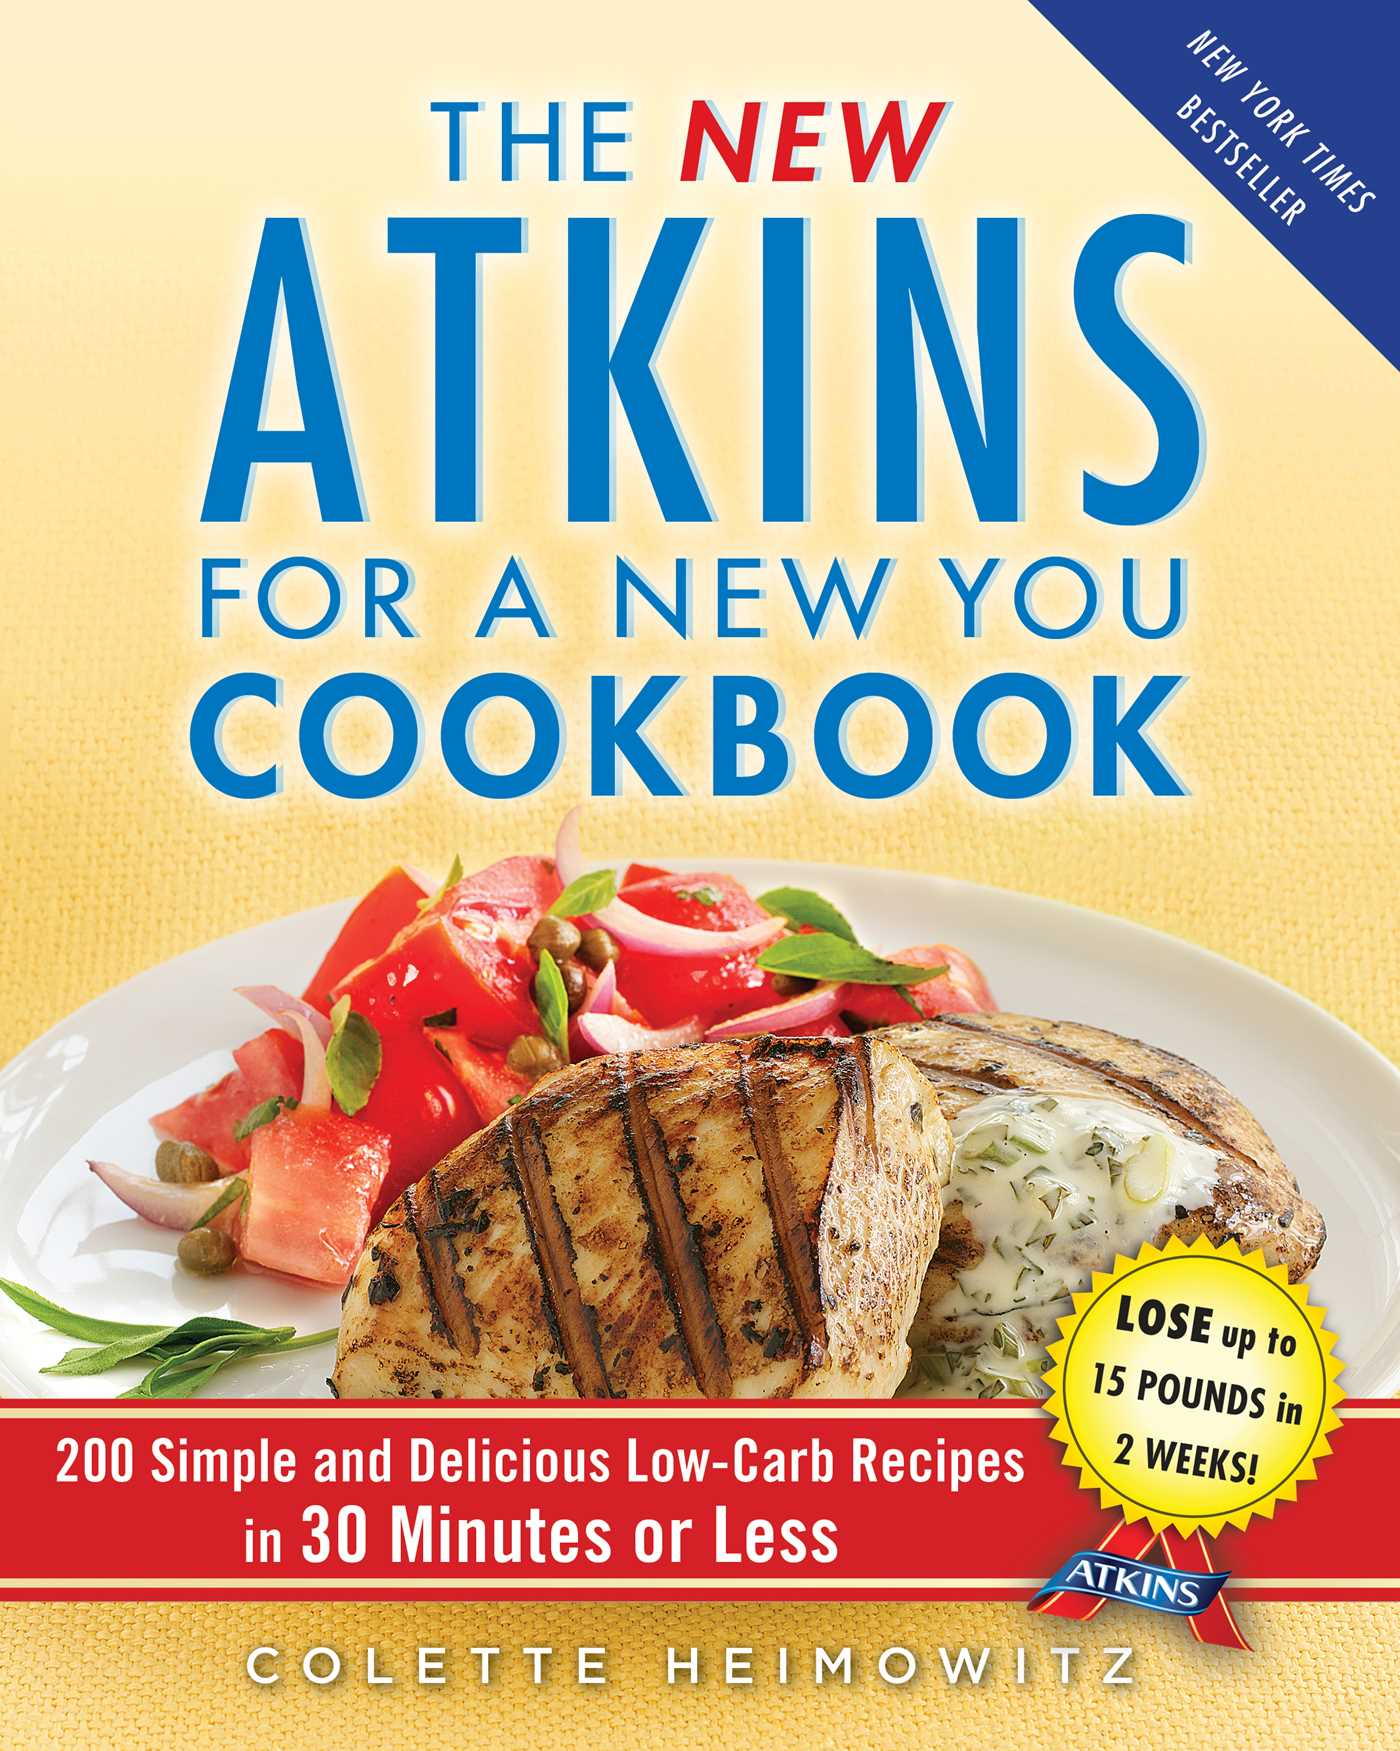 The new atkins for a new you cookbook 9781451660852 hr